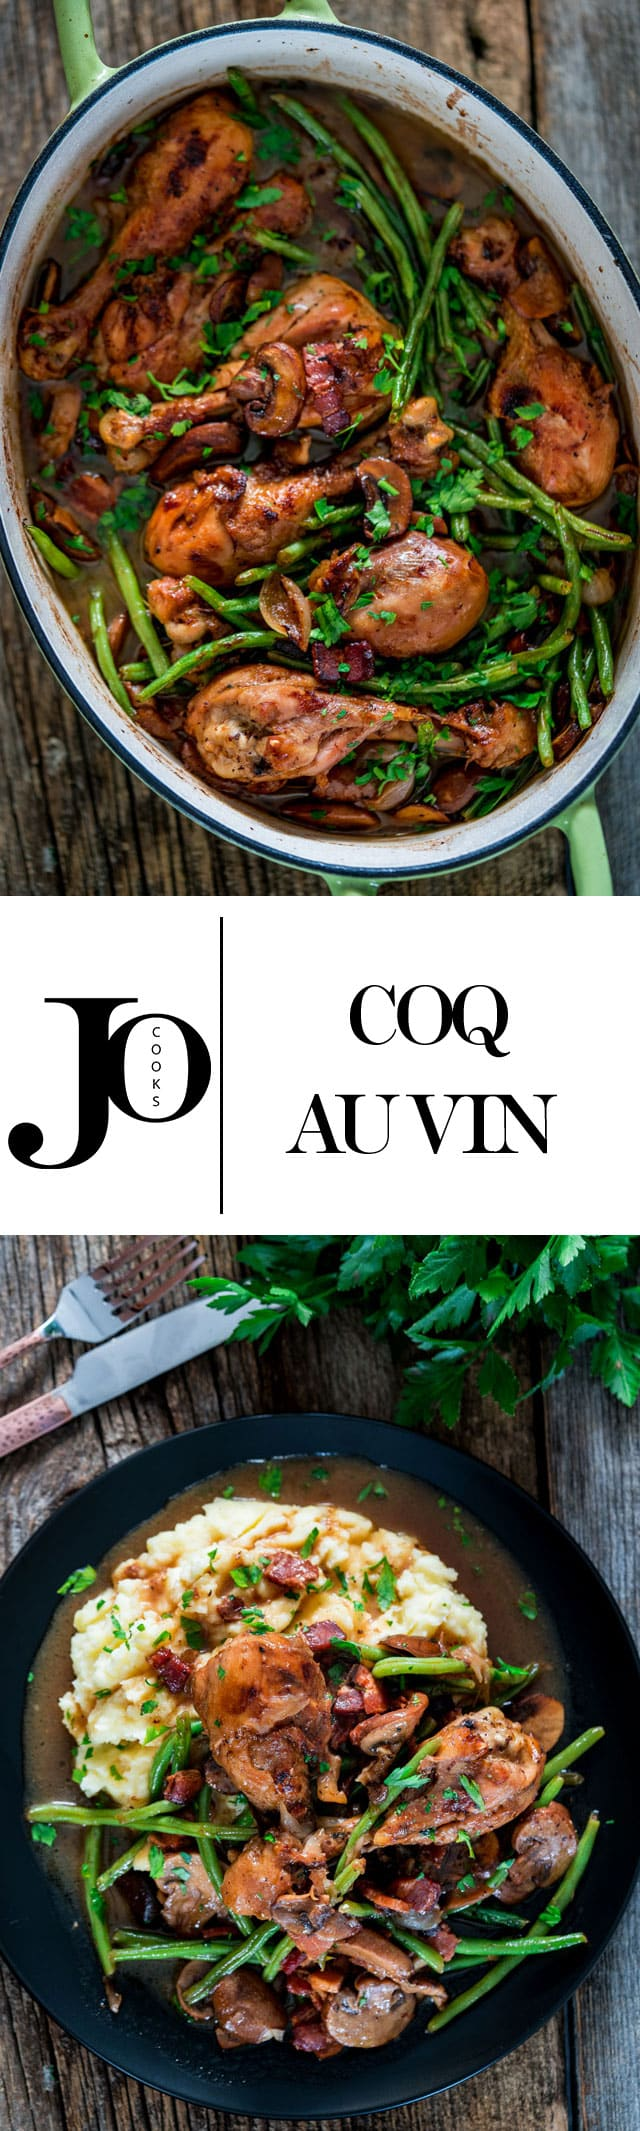 Coq Au Vin with Mashed Potatoes - This French dish is made with chicken braised in red wine with mushrooms, onions and green beans, lots of herbs, perfect for fall!